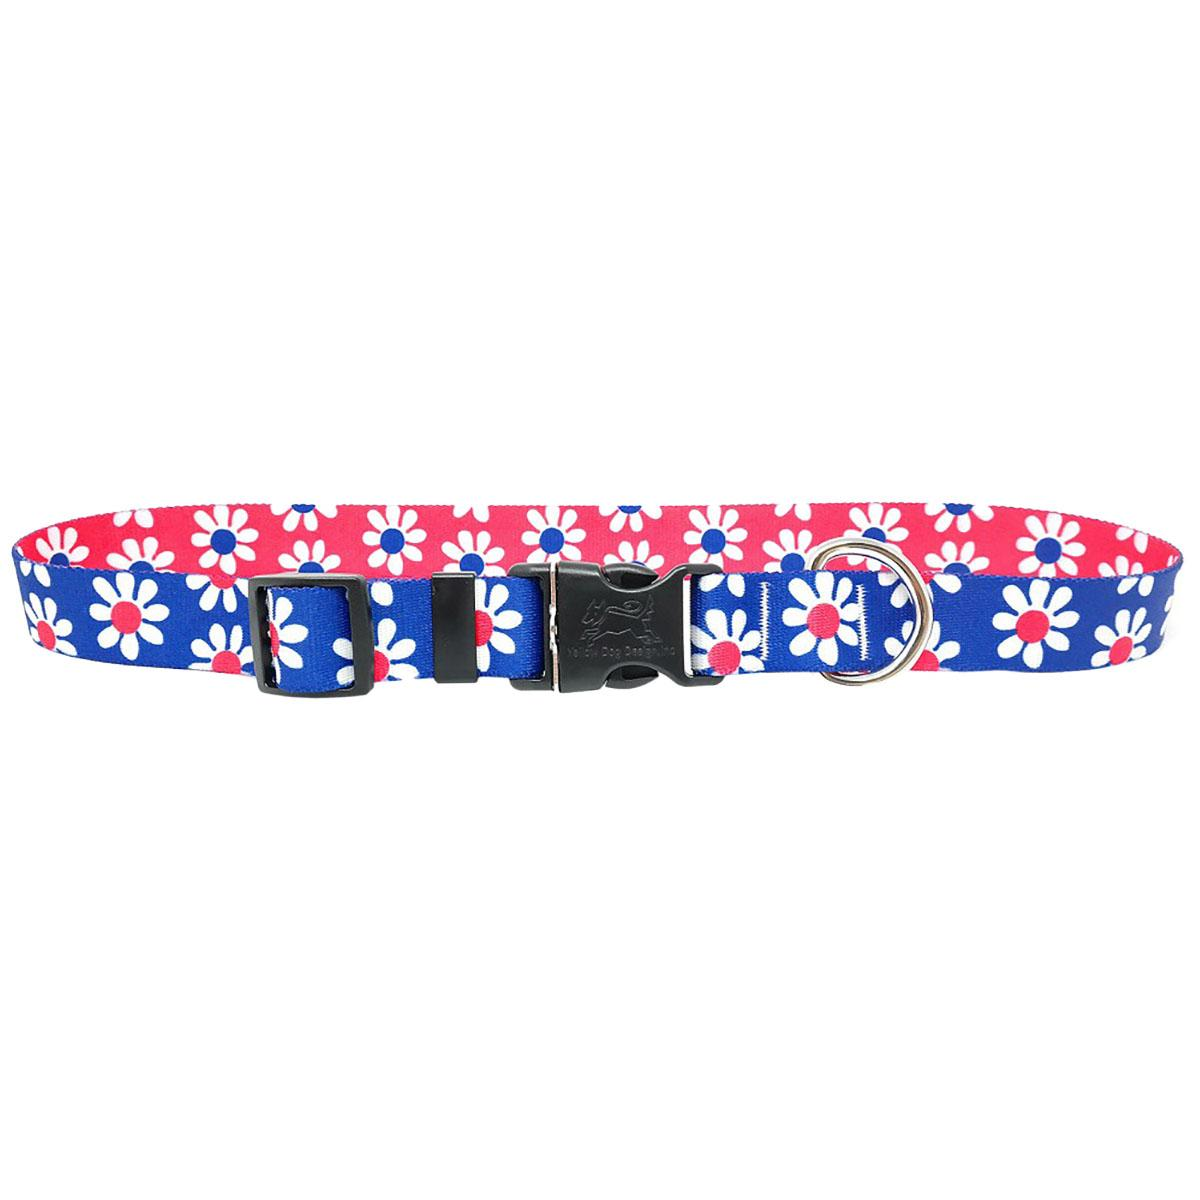 Mix and Match Daisy Dog Collar by Yellow Dog - Magenta and Royal Blue